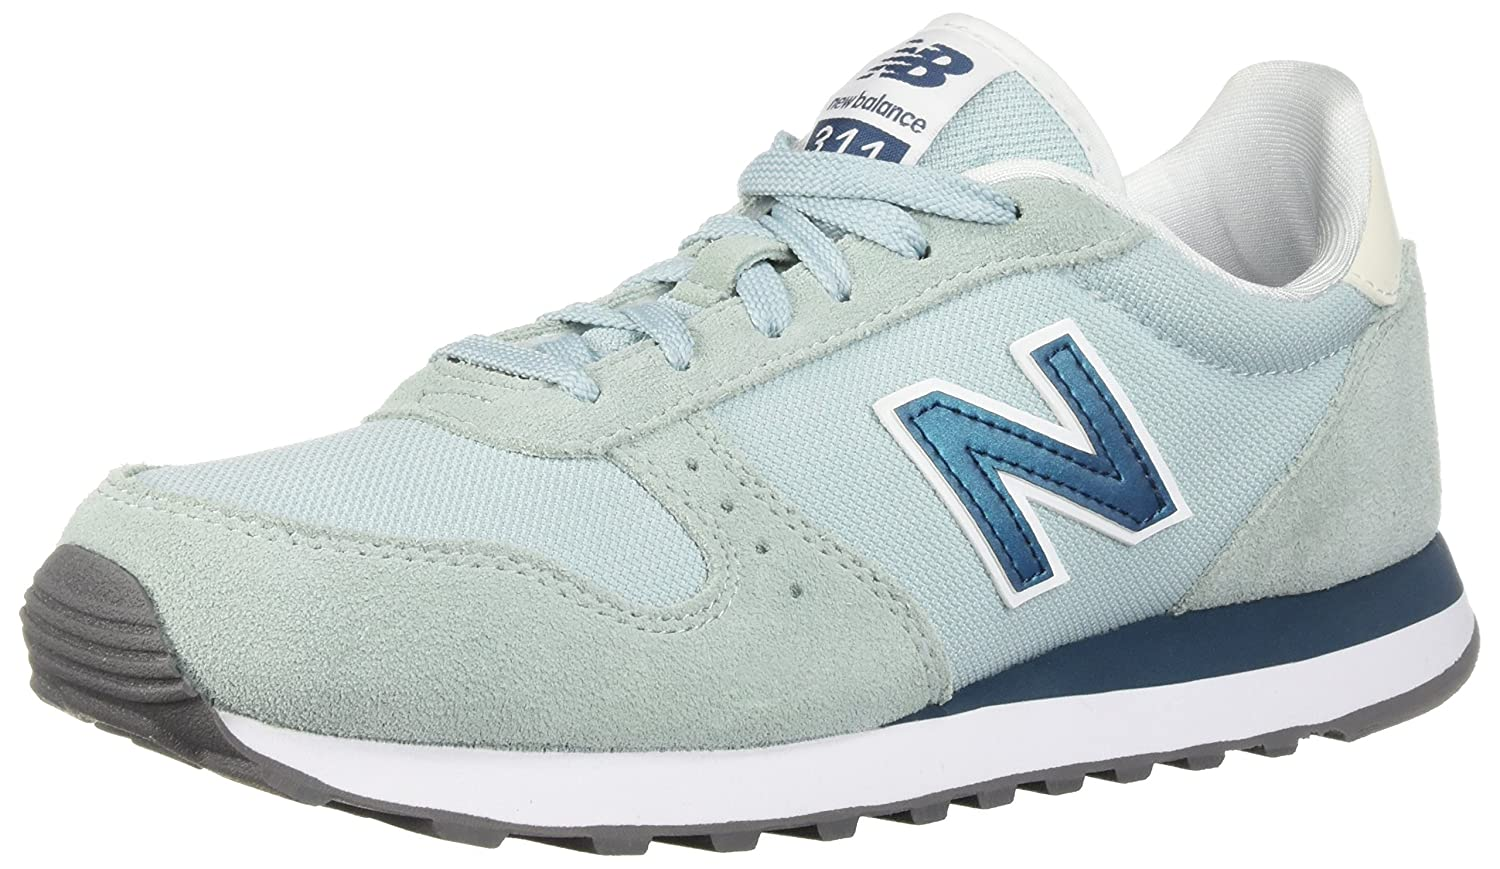 New Balance Women's 311v1 Sneaker B0751PSR3Y 8.5 B(M) US|Stardust/North Sea